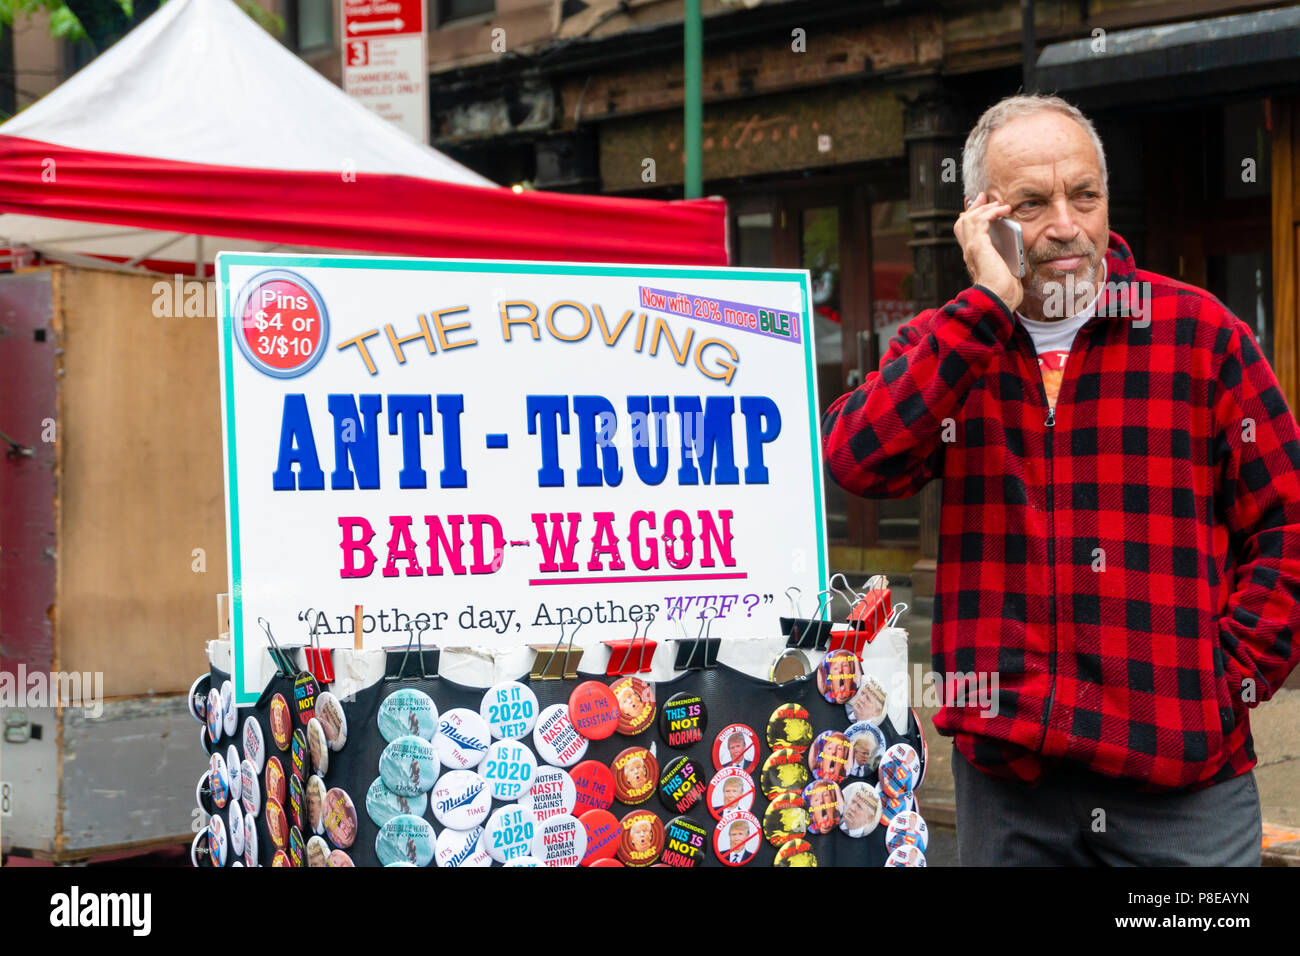 Anti-trump pins for sale at a stall in New York City - Stock Image